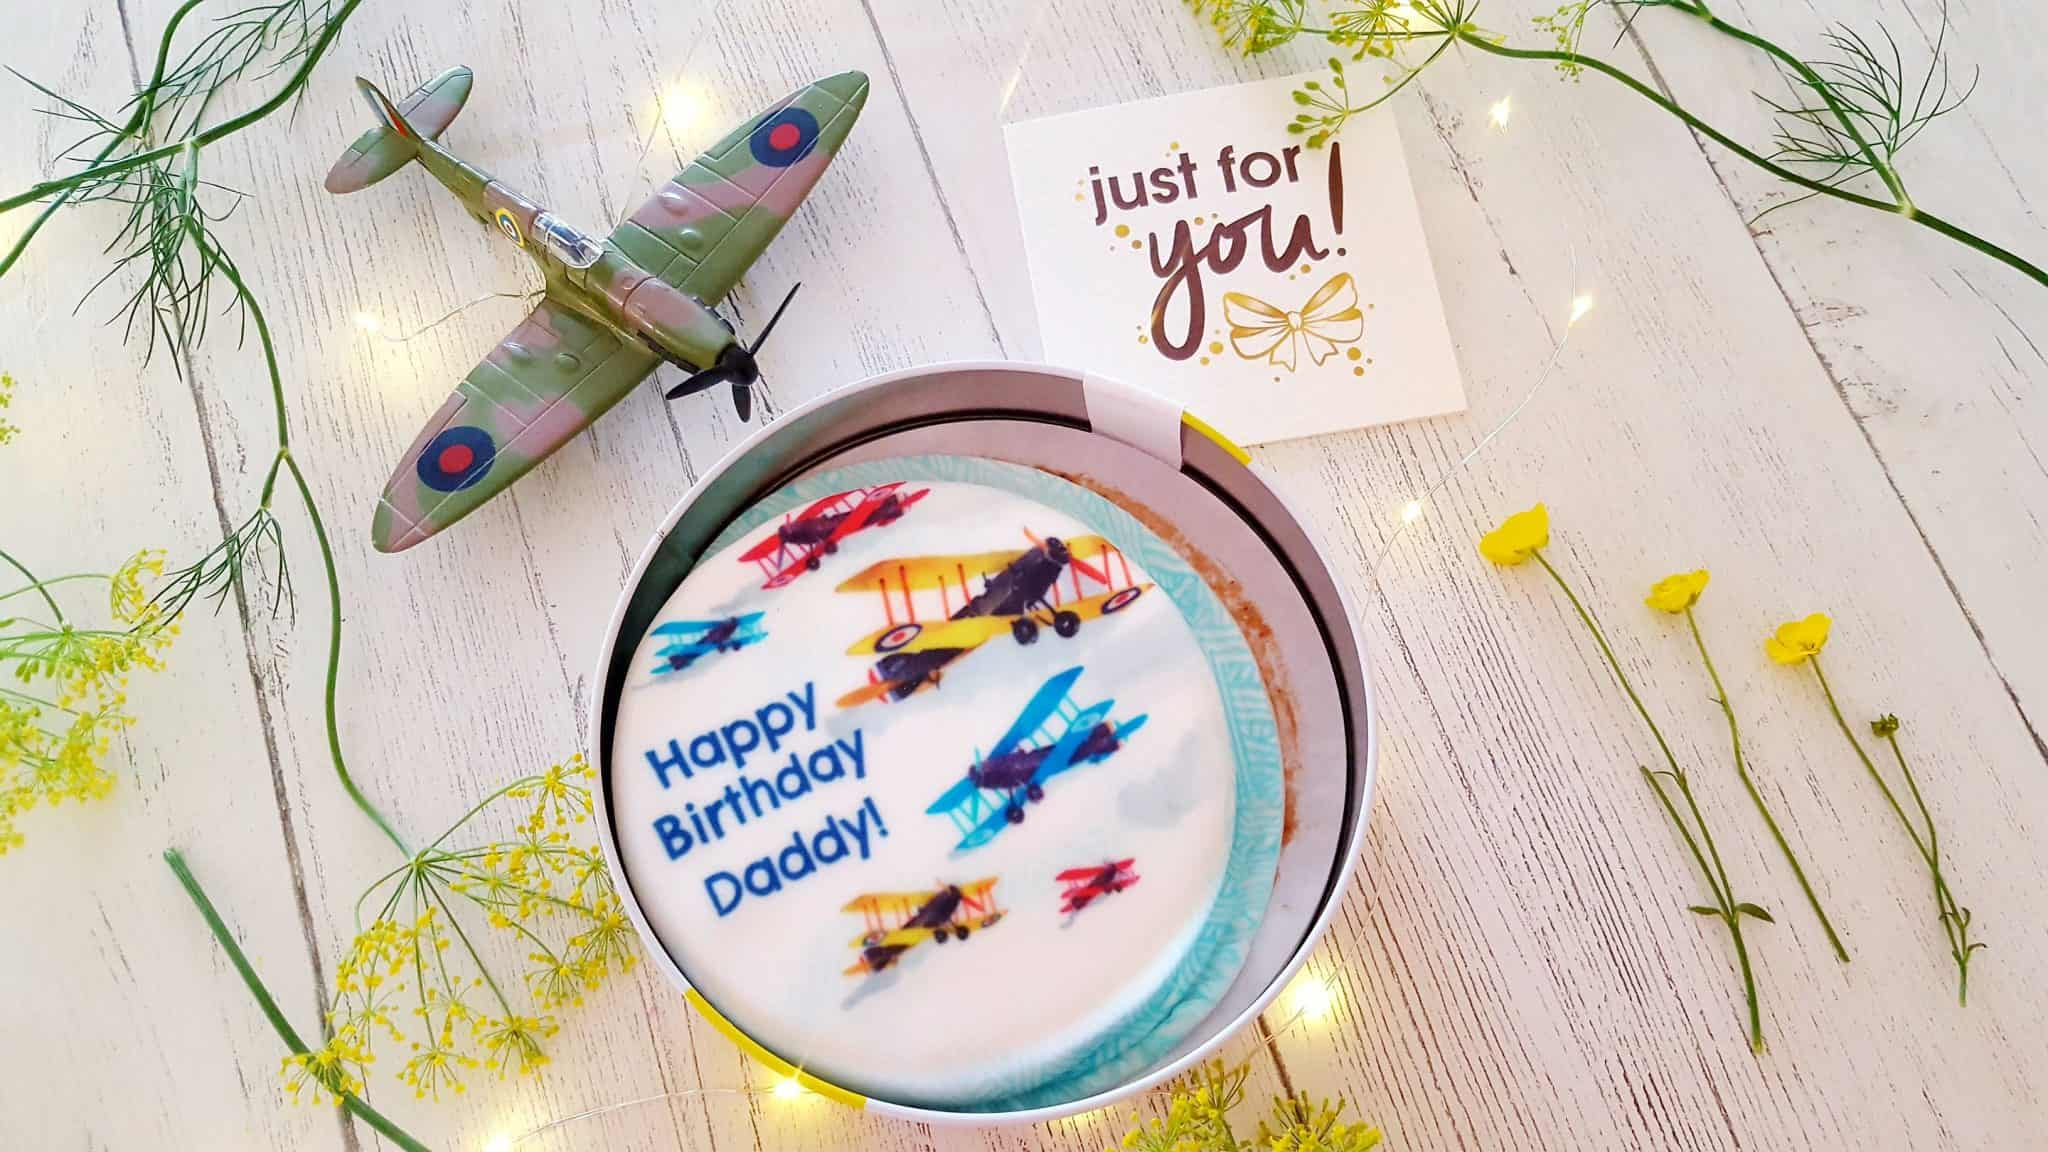 Happy-Birthday-Daddy!-with-bakersdays